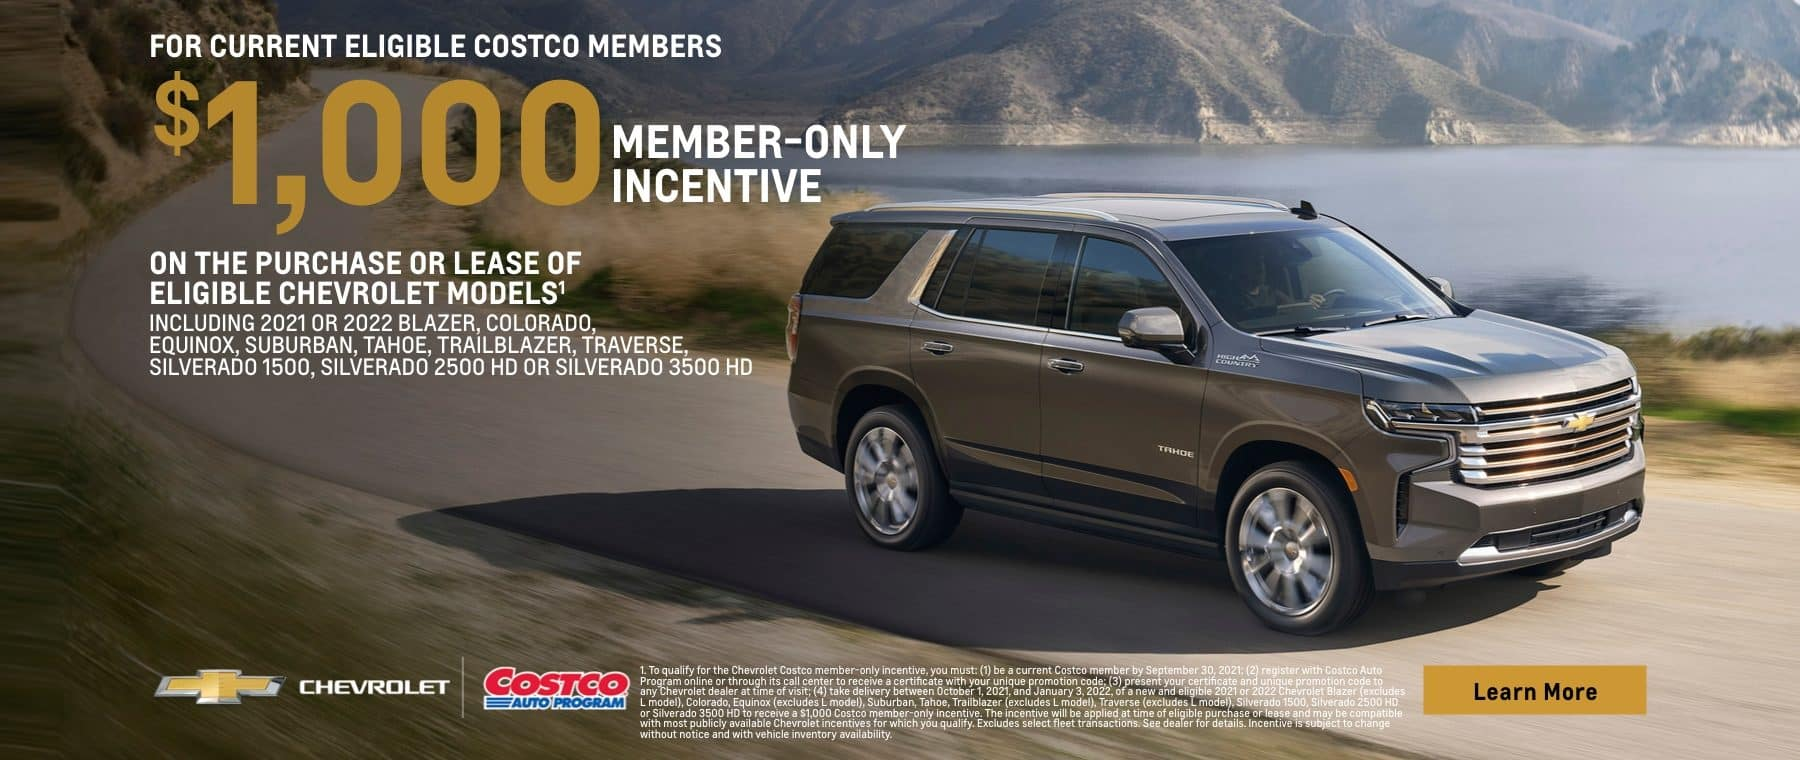 For current eligible Costco members. $1,000 member-only incentive on the purchase or lease of eligible Chevrolet models